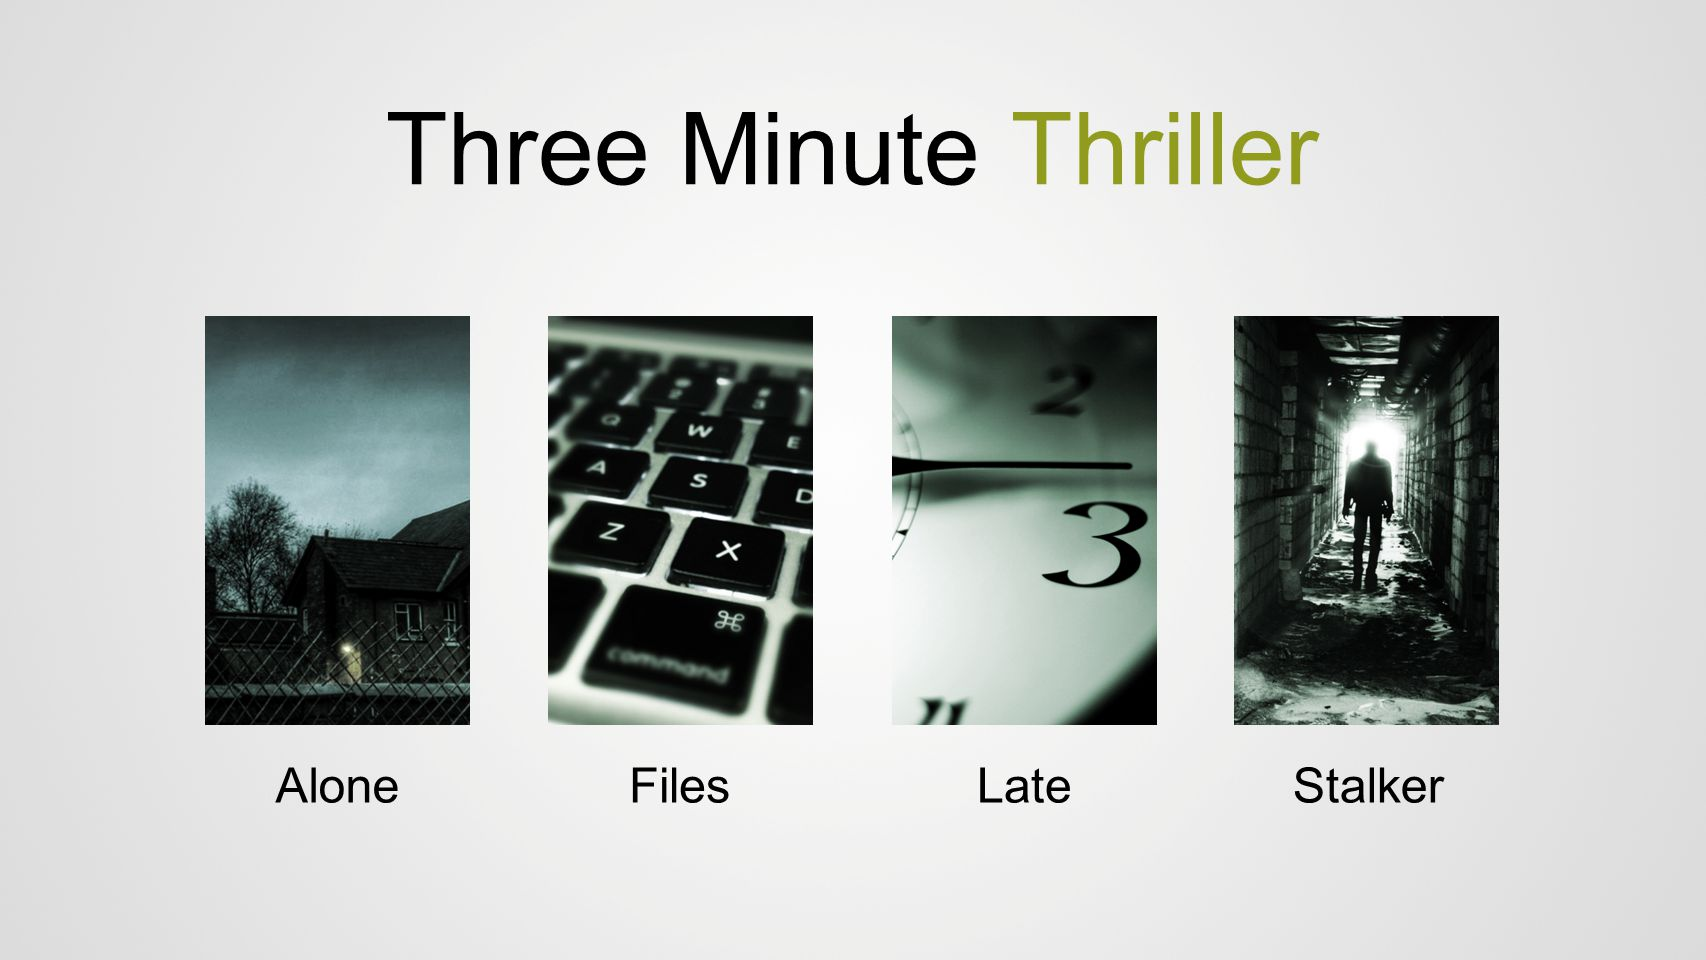 Three Minute Thriller Alone Files Late Stalker